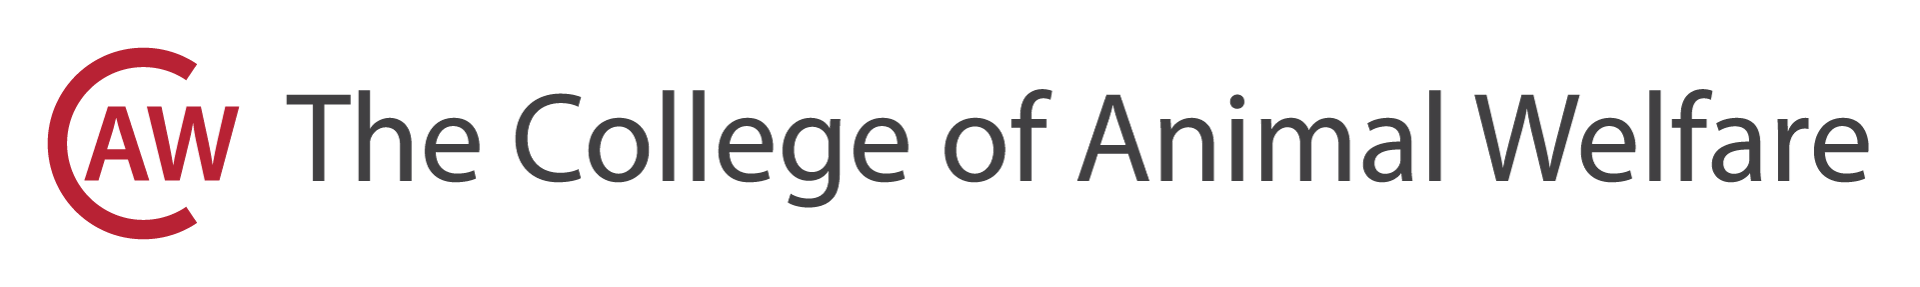 The College of Animal Welfare Logo